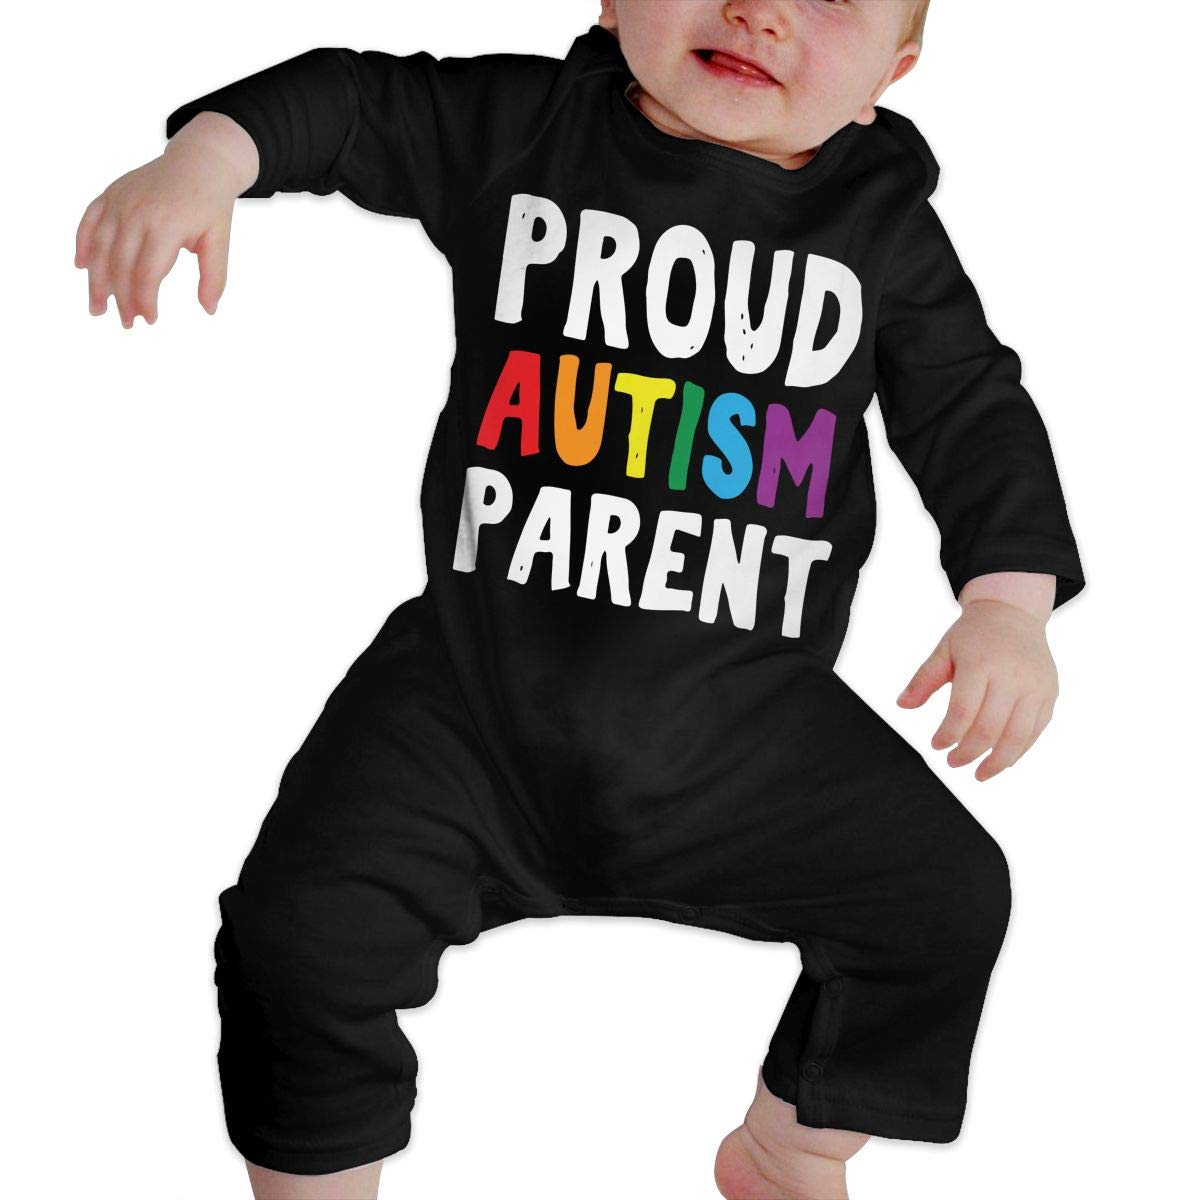 Mri-le1 Toddler Baby Boy Girl Bodysuits Proud Autism Parent Baby Rompers